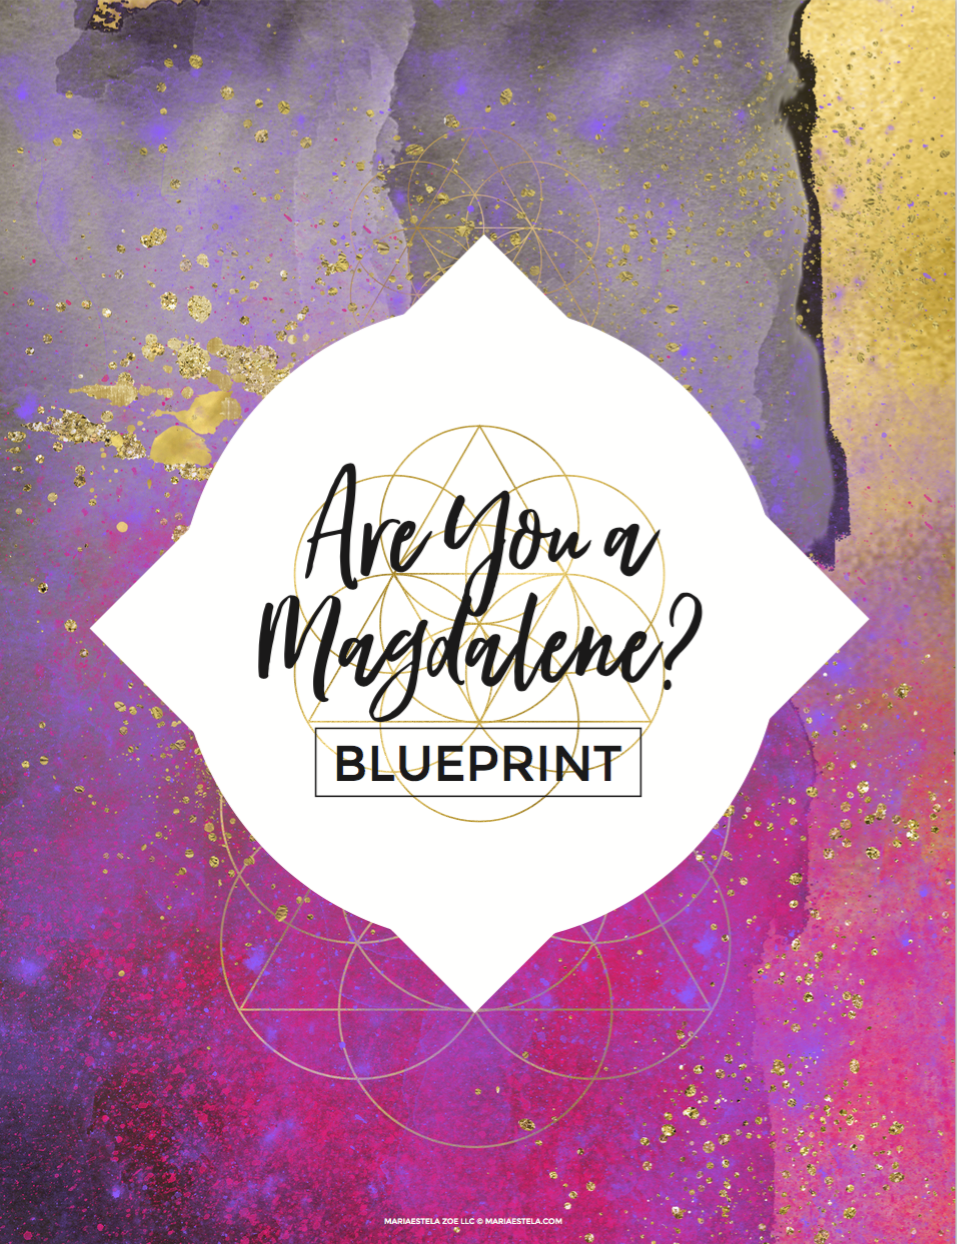 Are you a Magdalene? Get the Blueprint